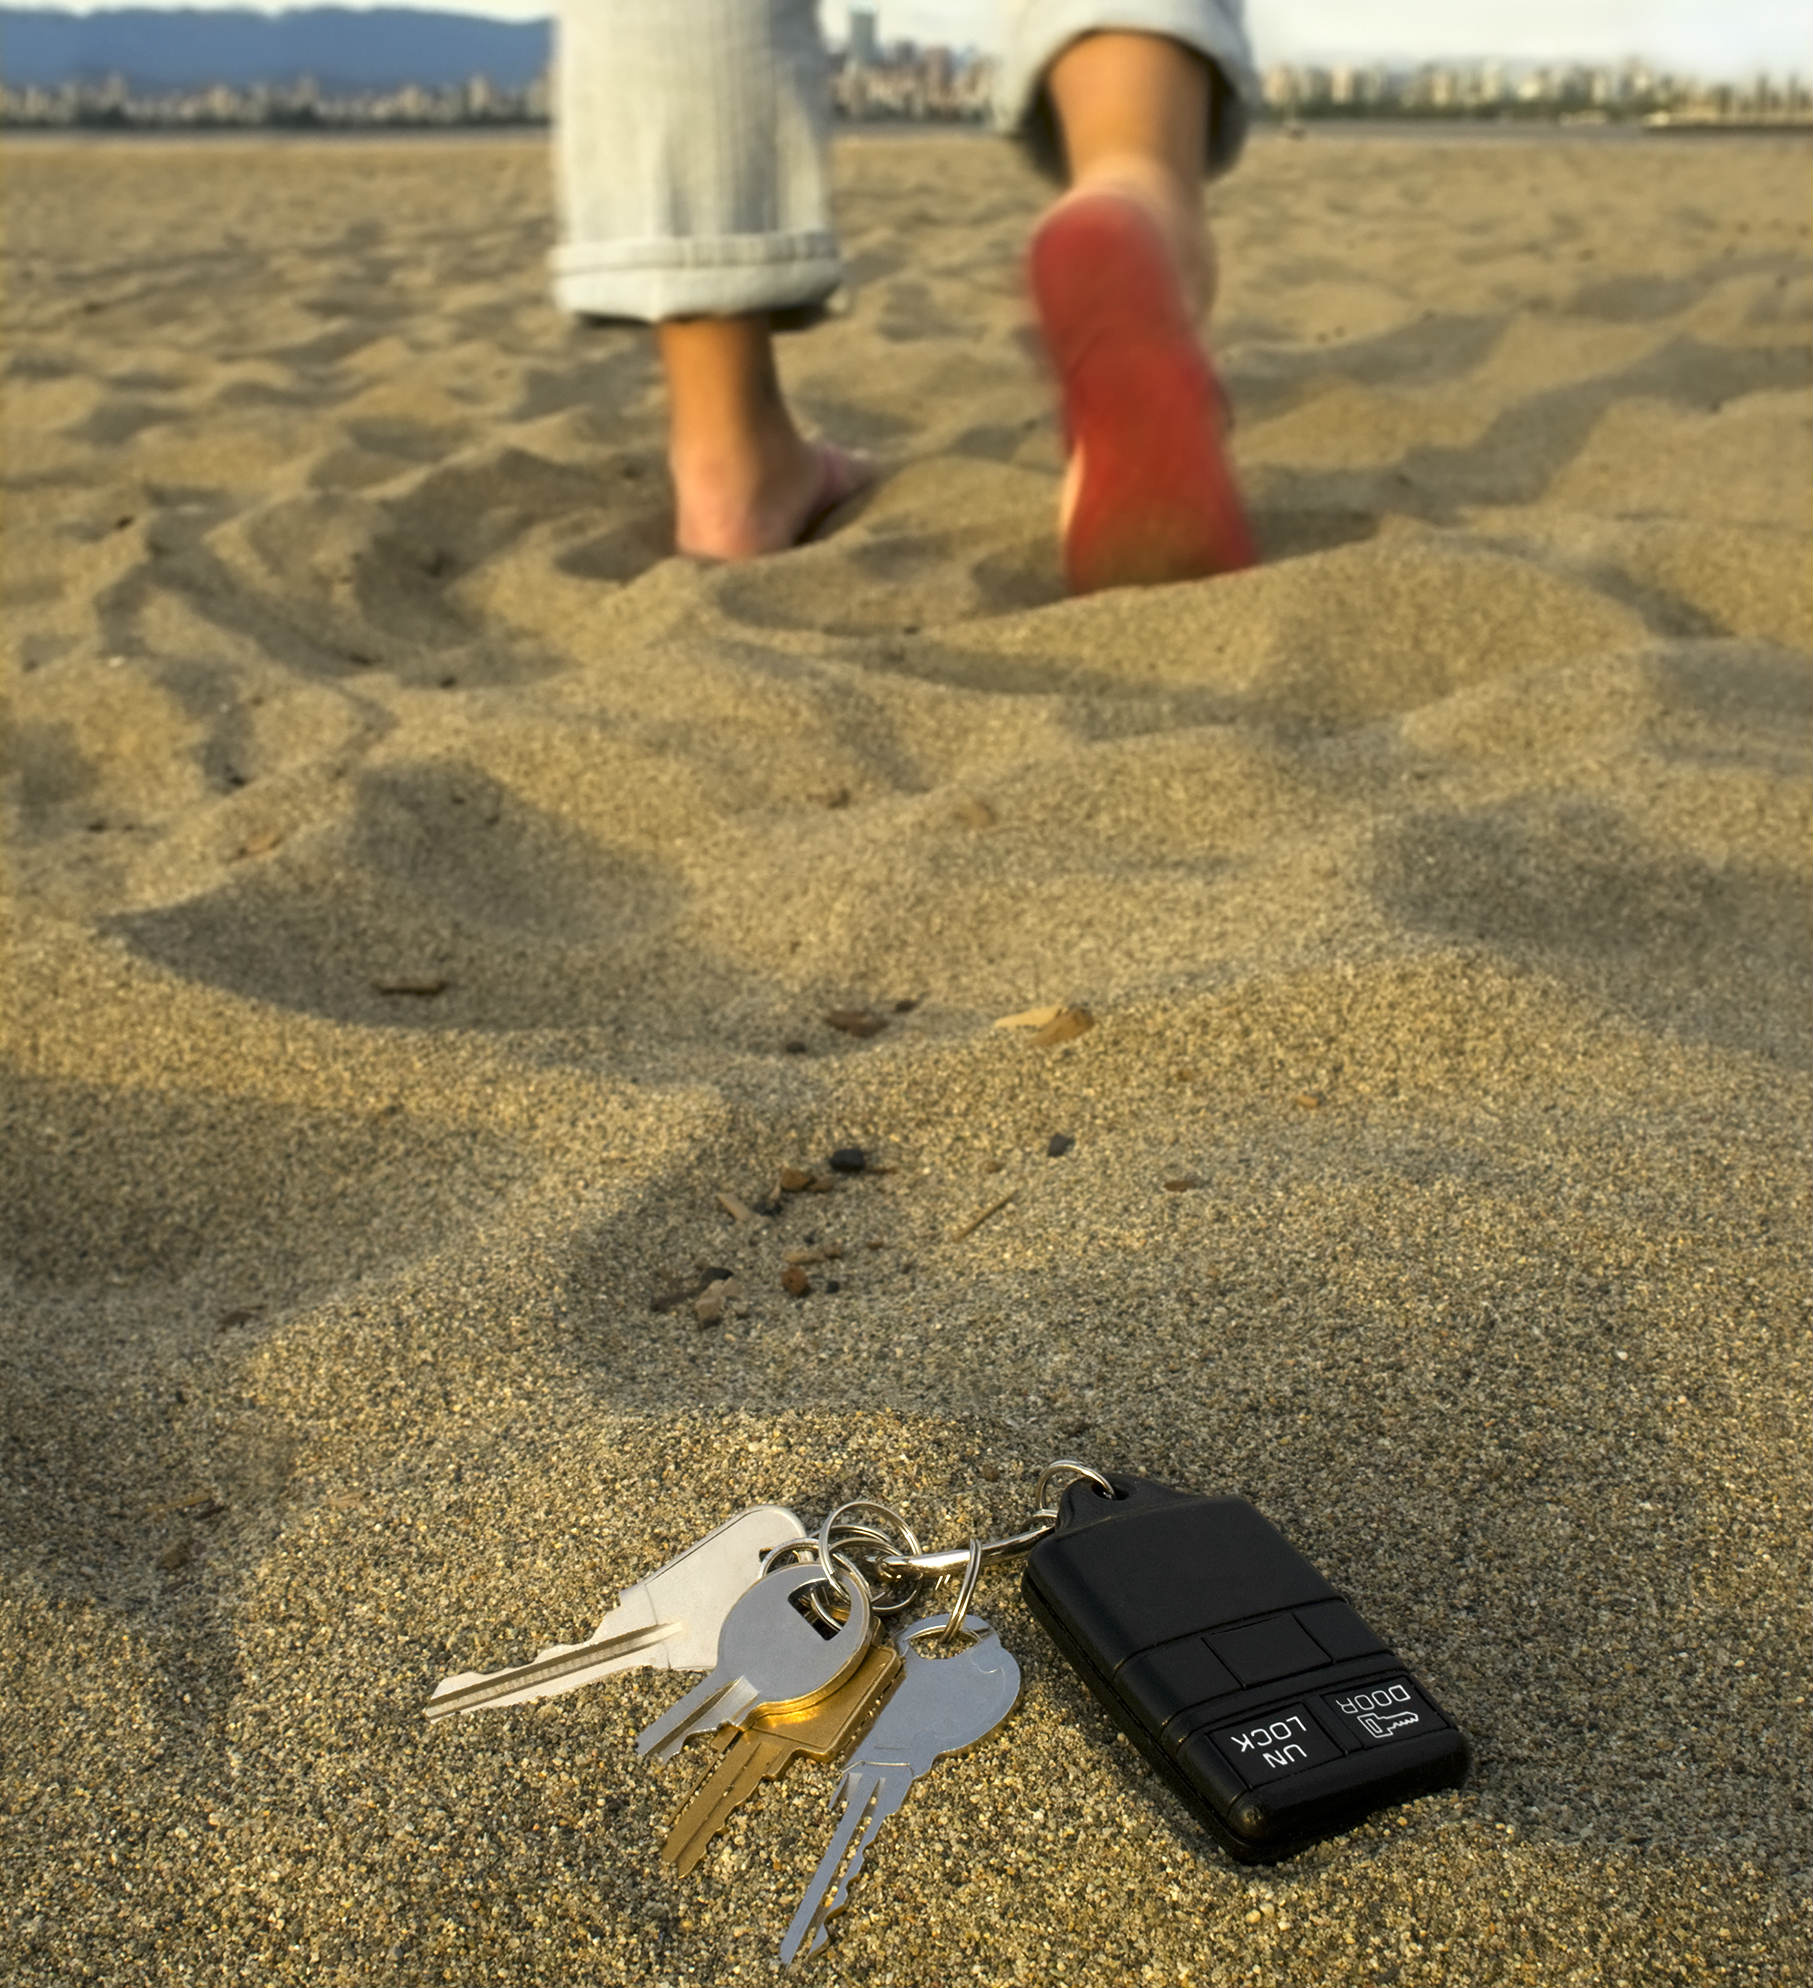 What to do if you have lost your car keys - Green Flag